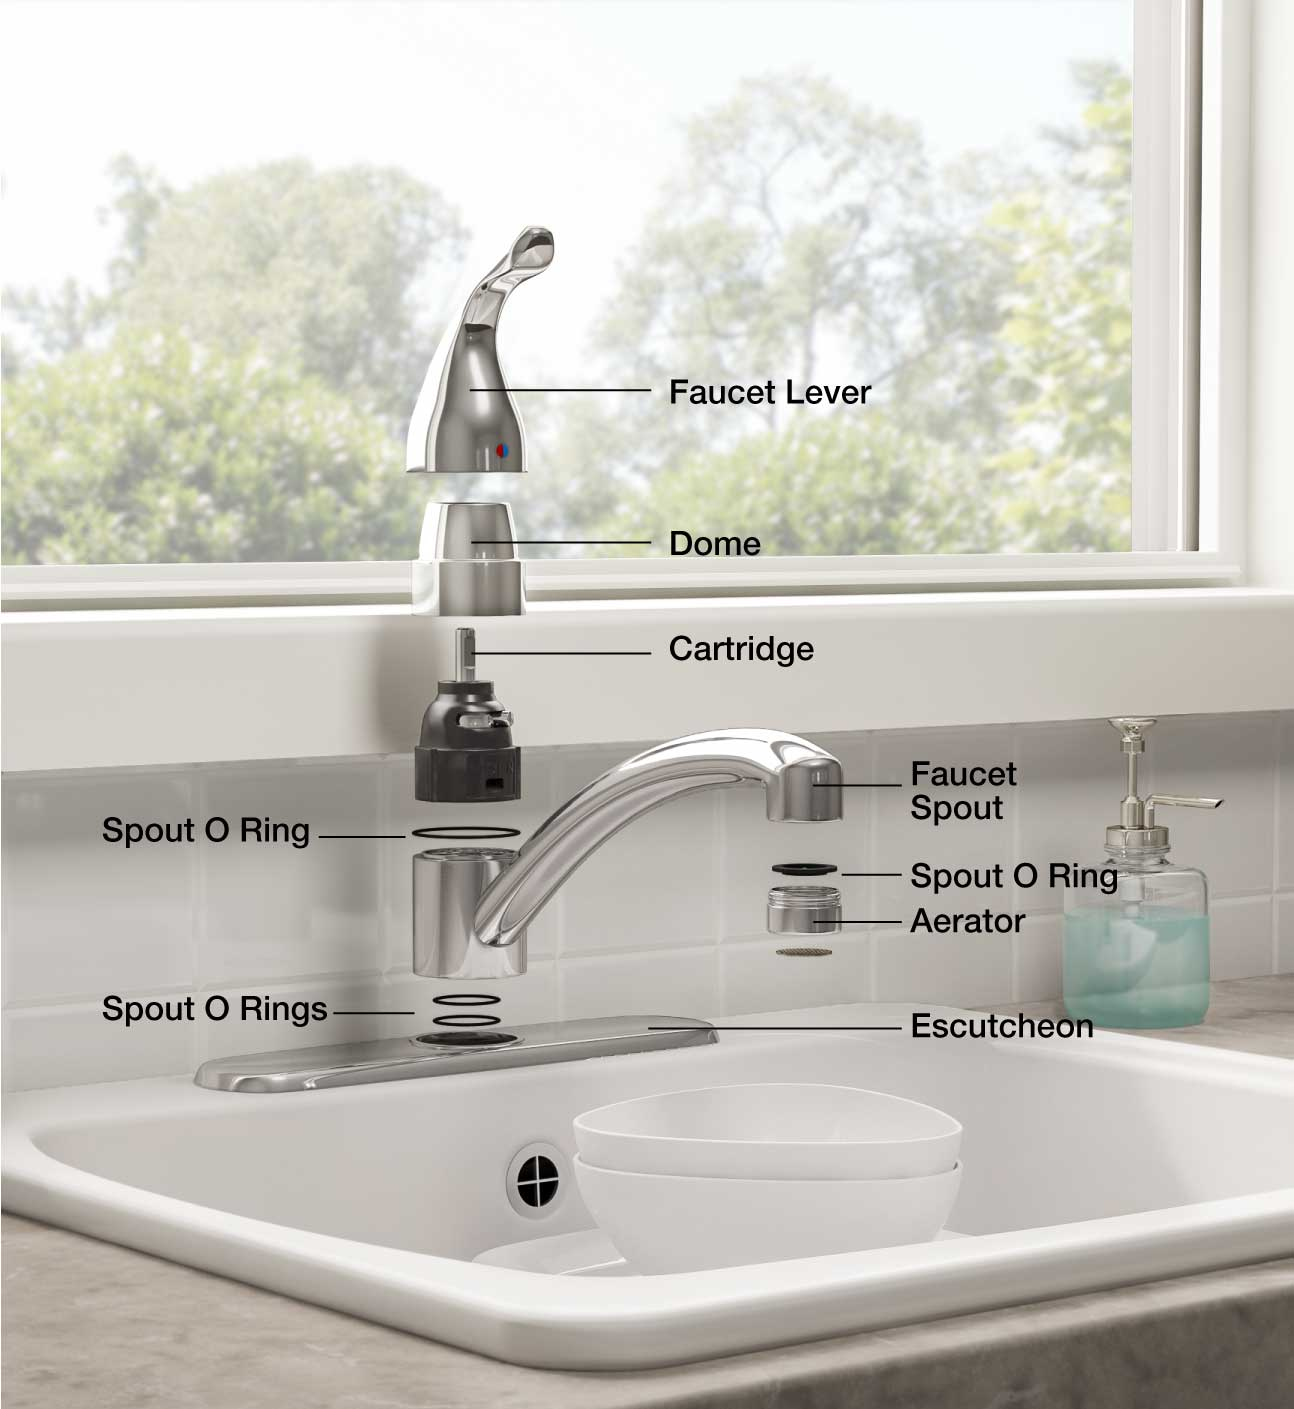 Phenomenal Faucet Parts Repair Kits Handles Controls Caps Interior Design Ideas Helimdqseriescom